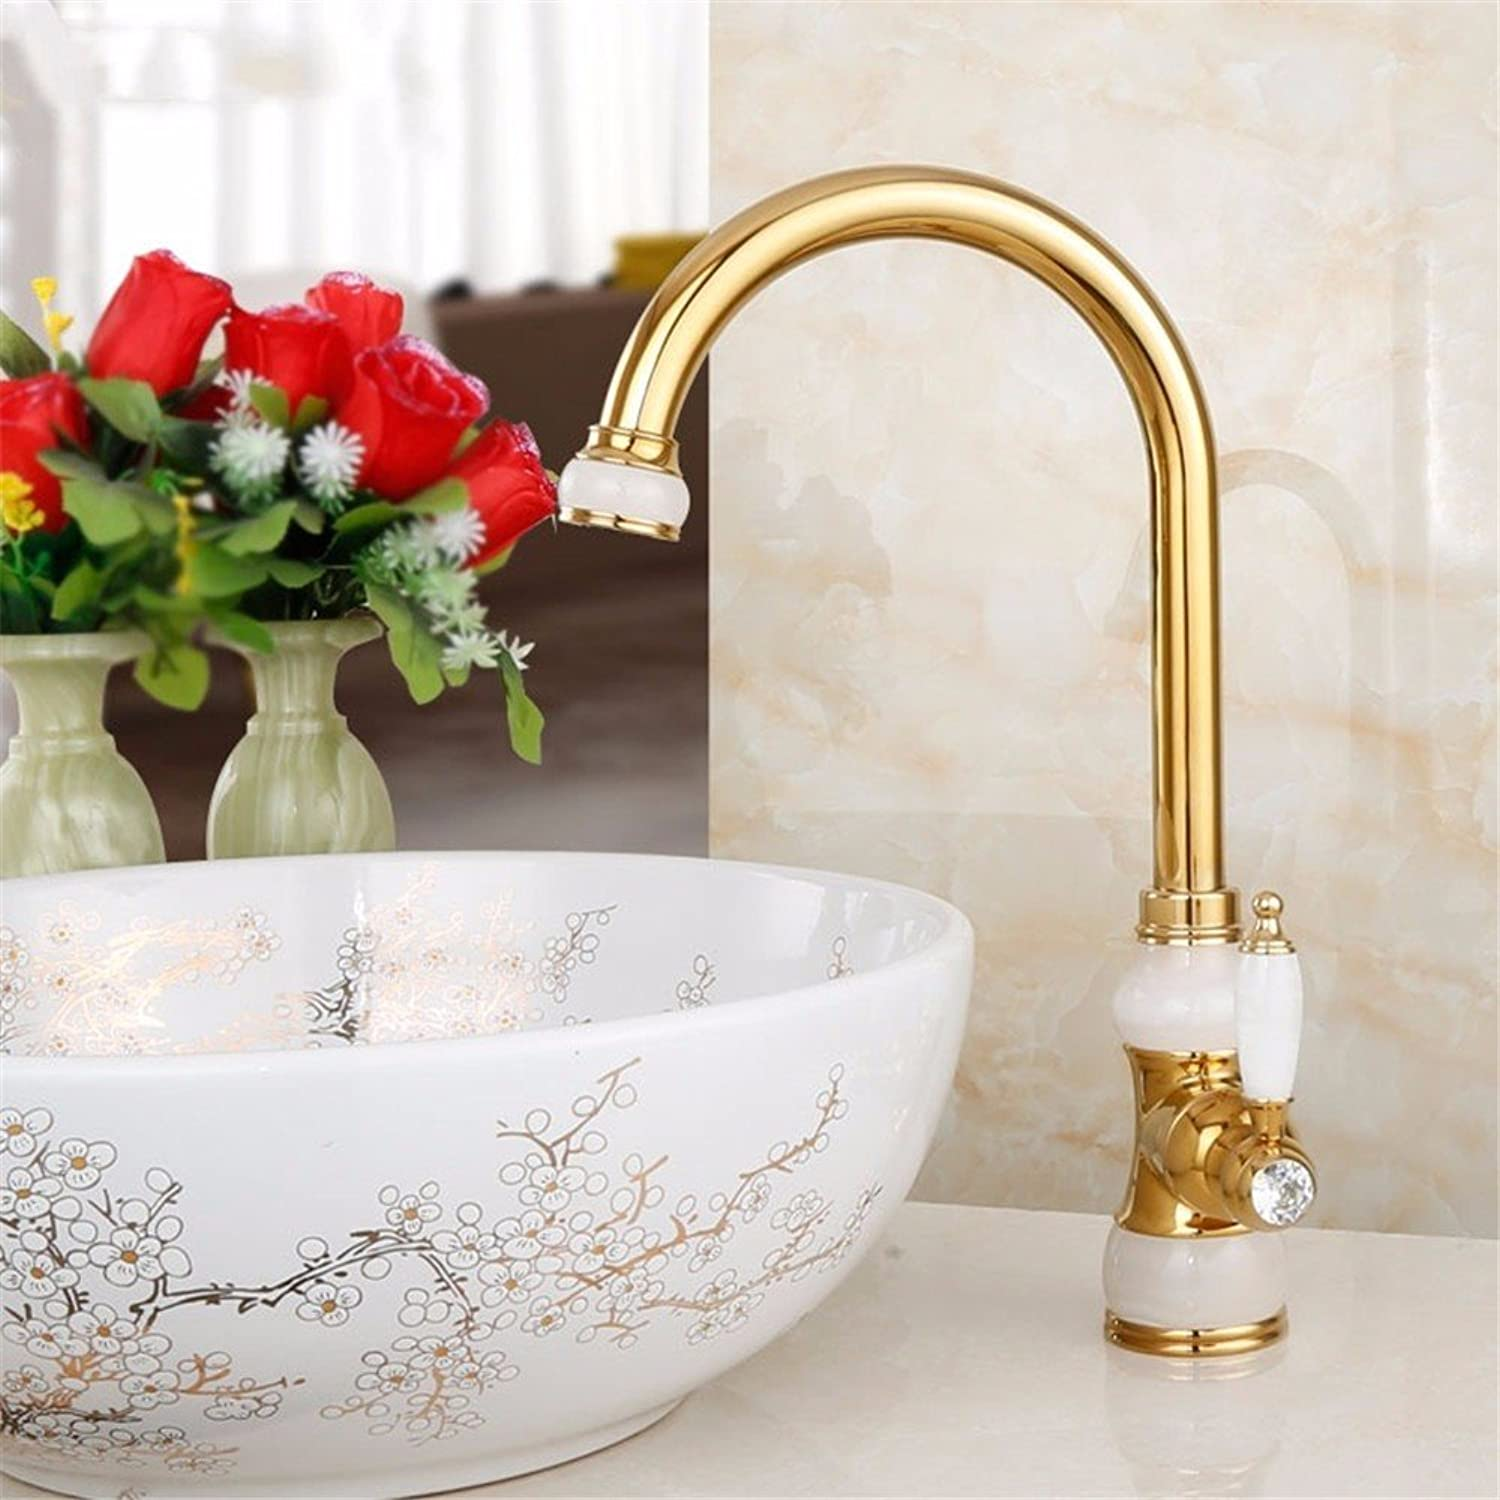 Bijjaladeva Antique Bathroom Sink Vessel Faucet Basin Mixer Tap Natural full copper basin and cold water faucet kitchen faucet can redate the gold antique gold white jade